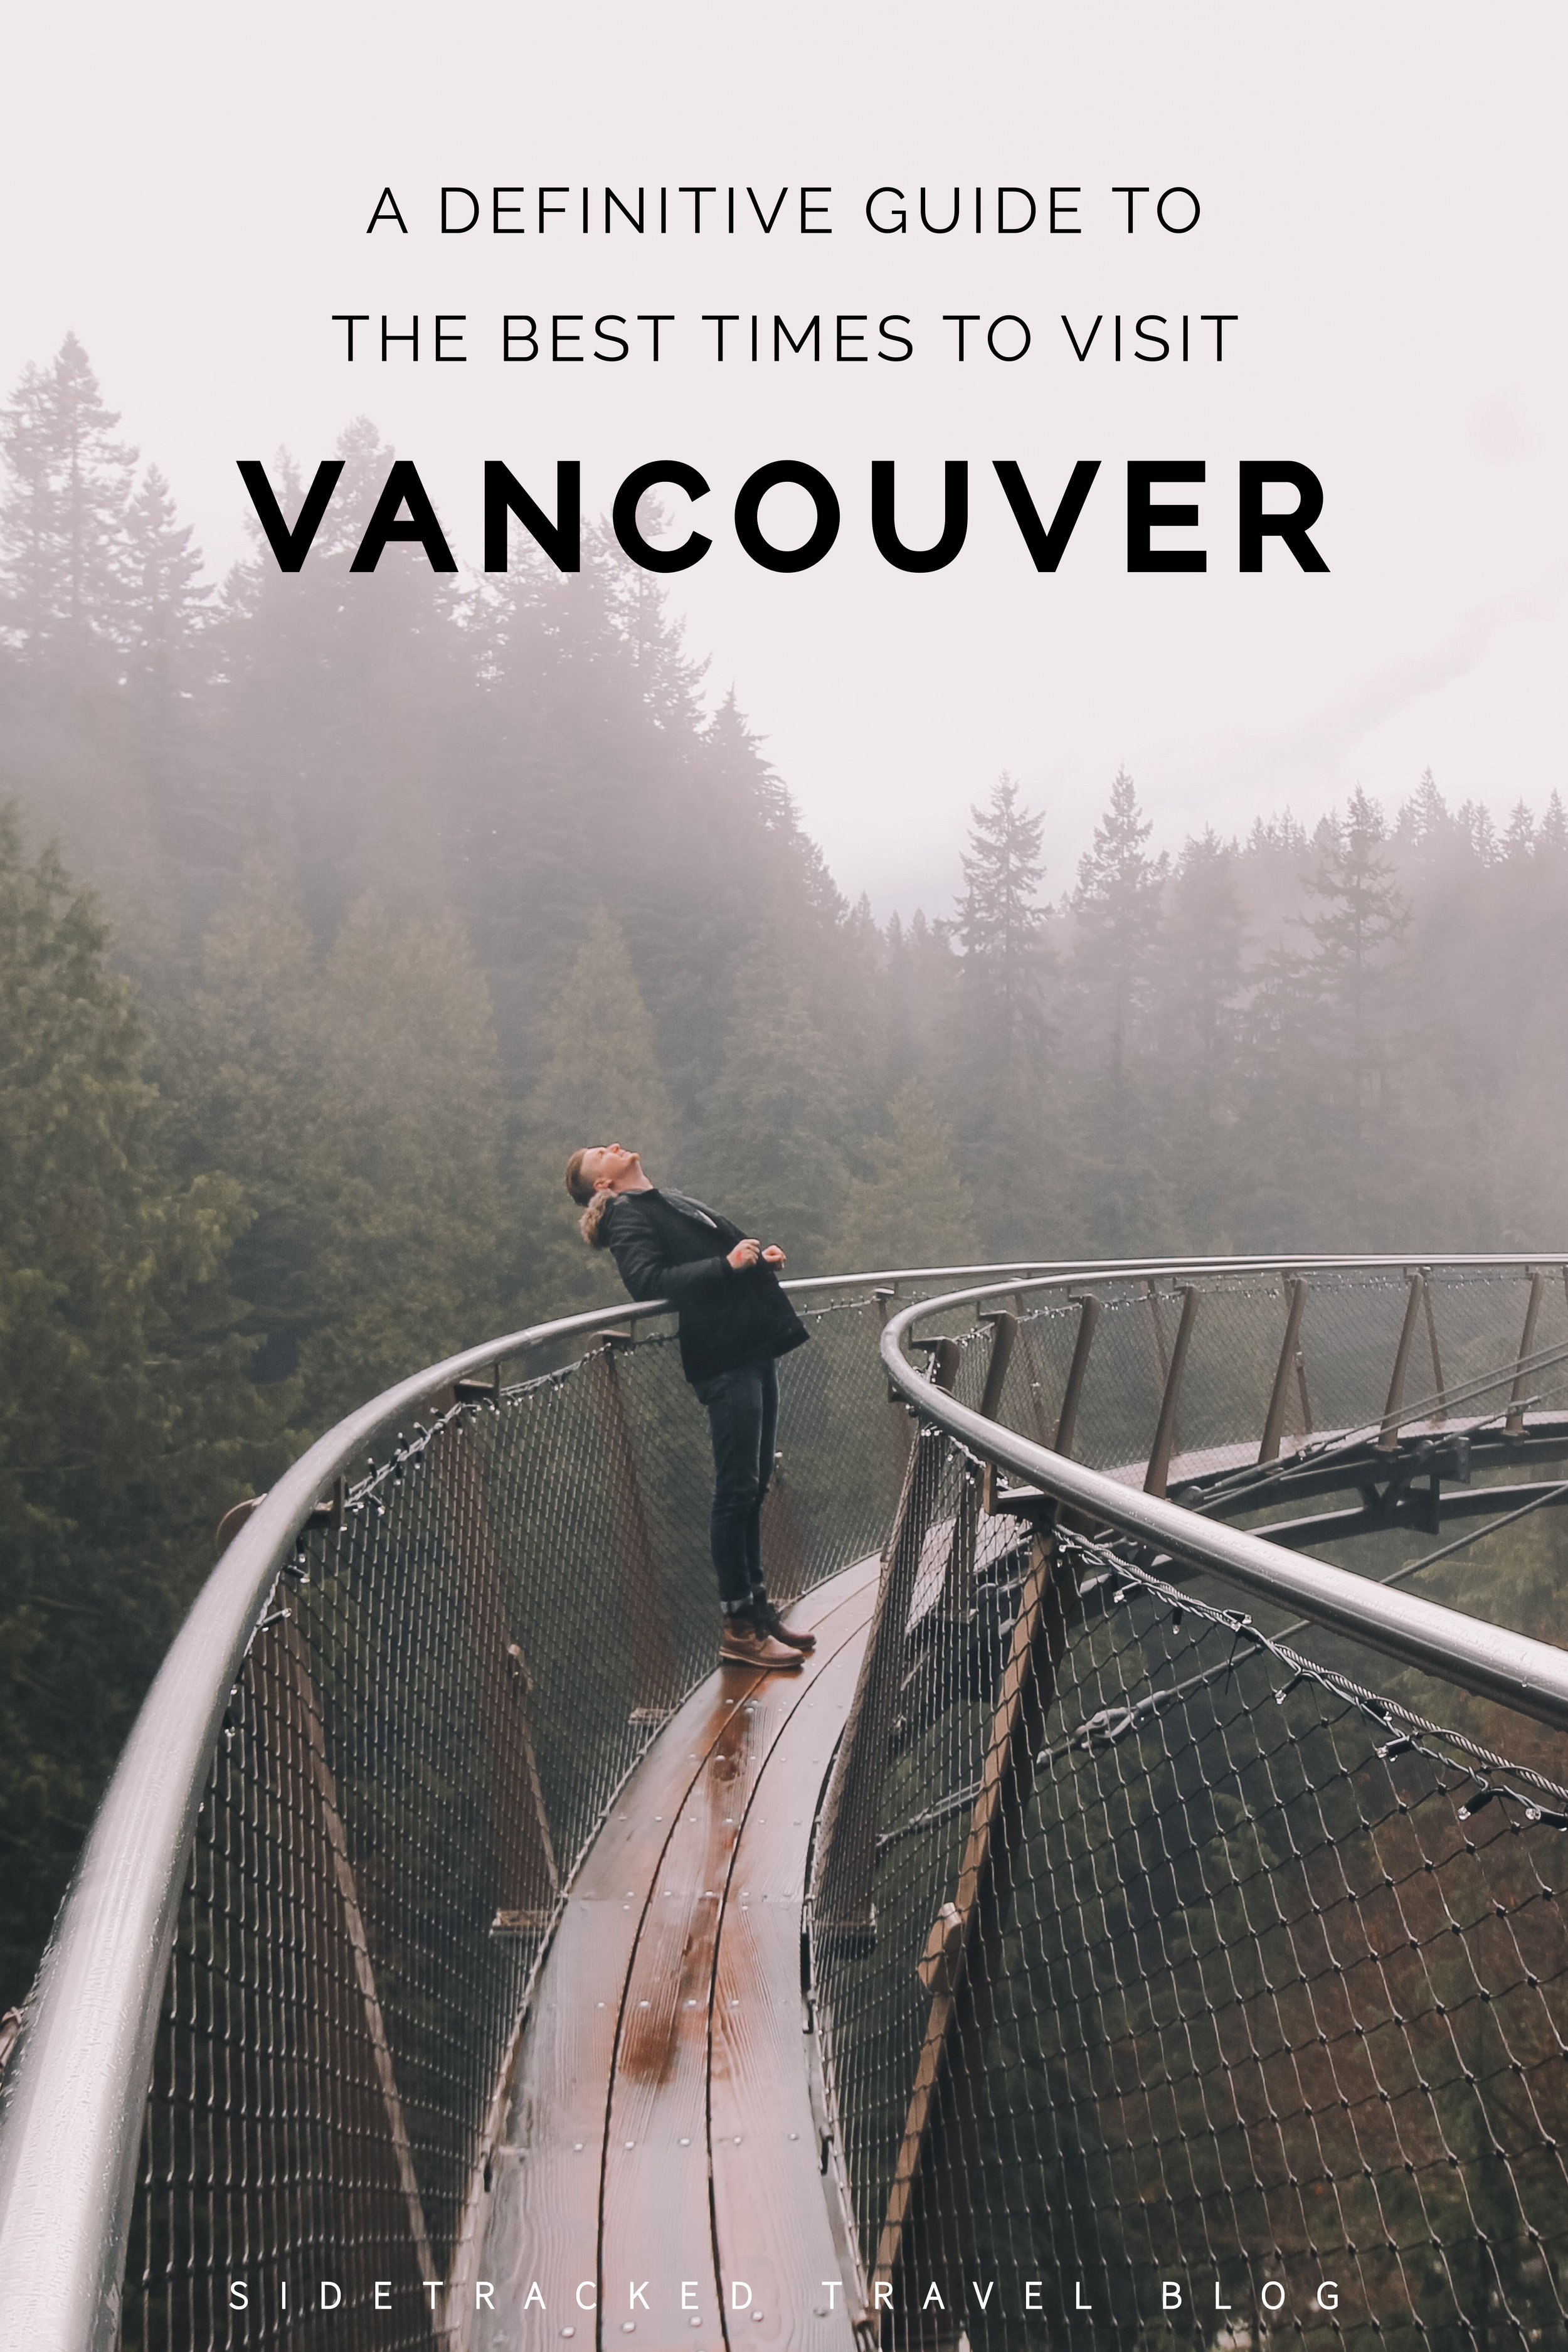 Vancouver has defined seasons, plenty to do year round, and if you pack the right clothing, you can enjoy a visit at any time.In this article you'll find a month by month breakdown of happenings and important info for traveling to Vancouver to help you choose the right time for your next visit!